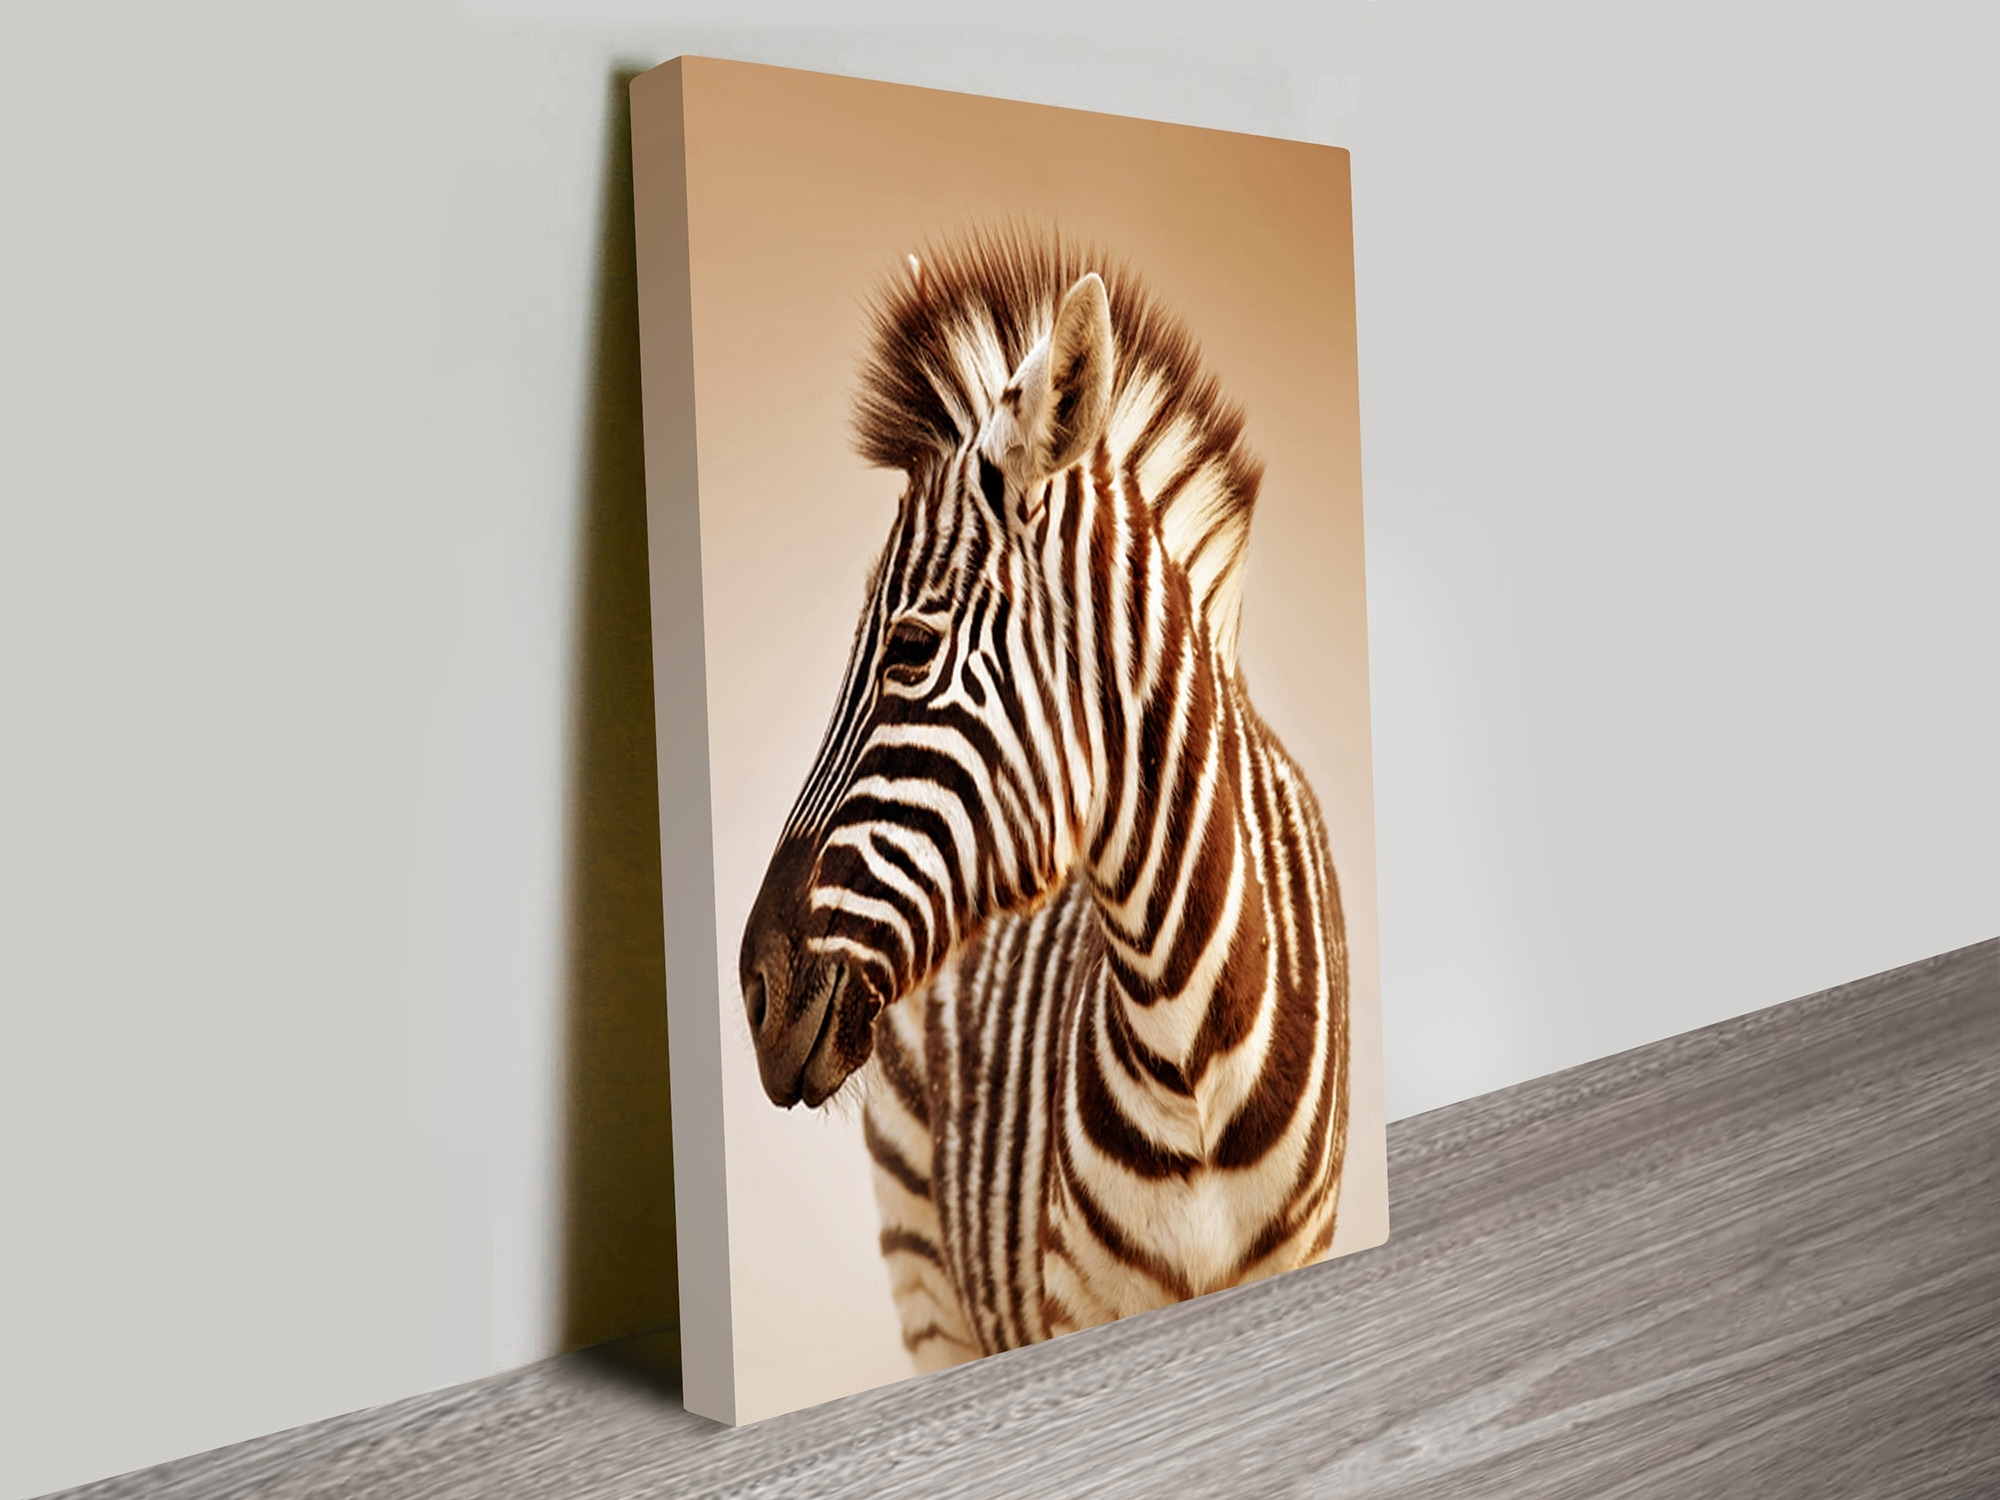 Well Known Zebra Canvas Wall Art With Regard To Zebra Sepia Canvas Wall Art Prints Wollongong (Gallery 15 of 20)